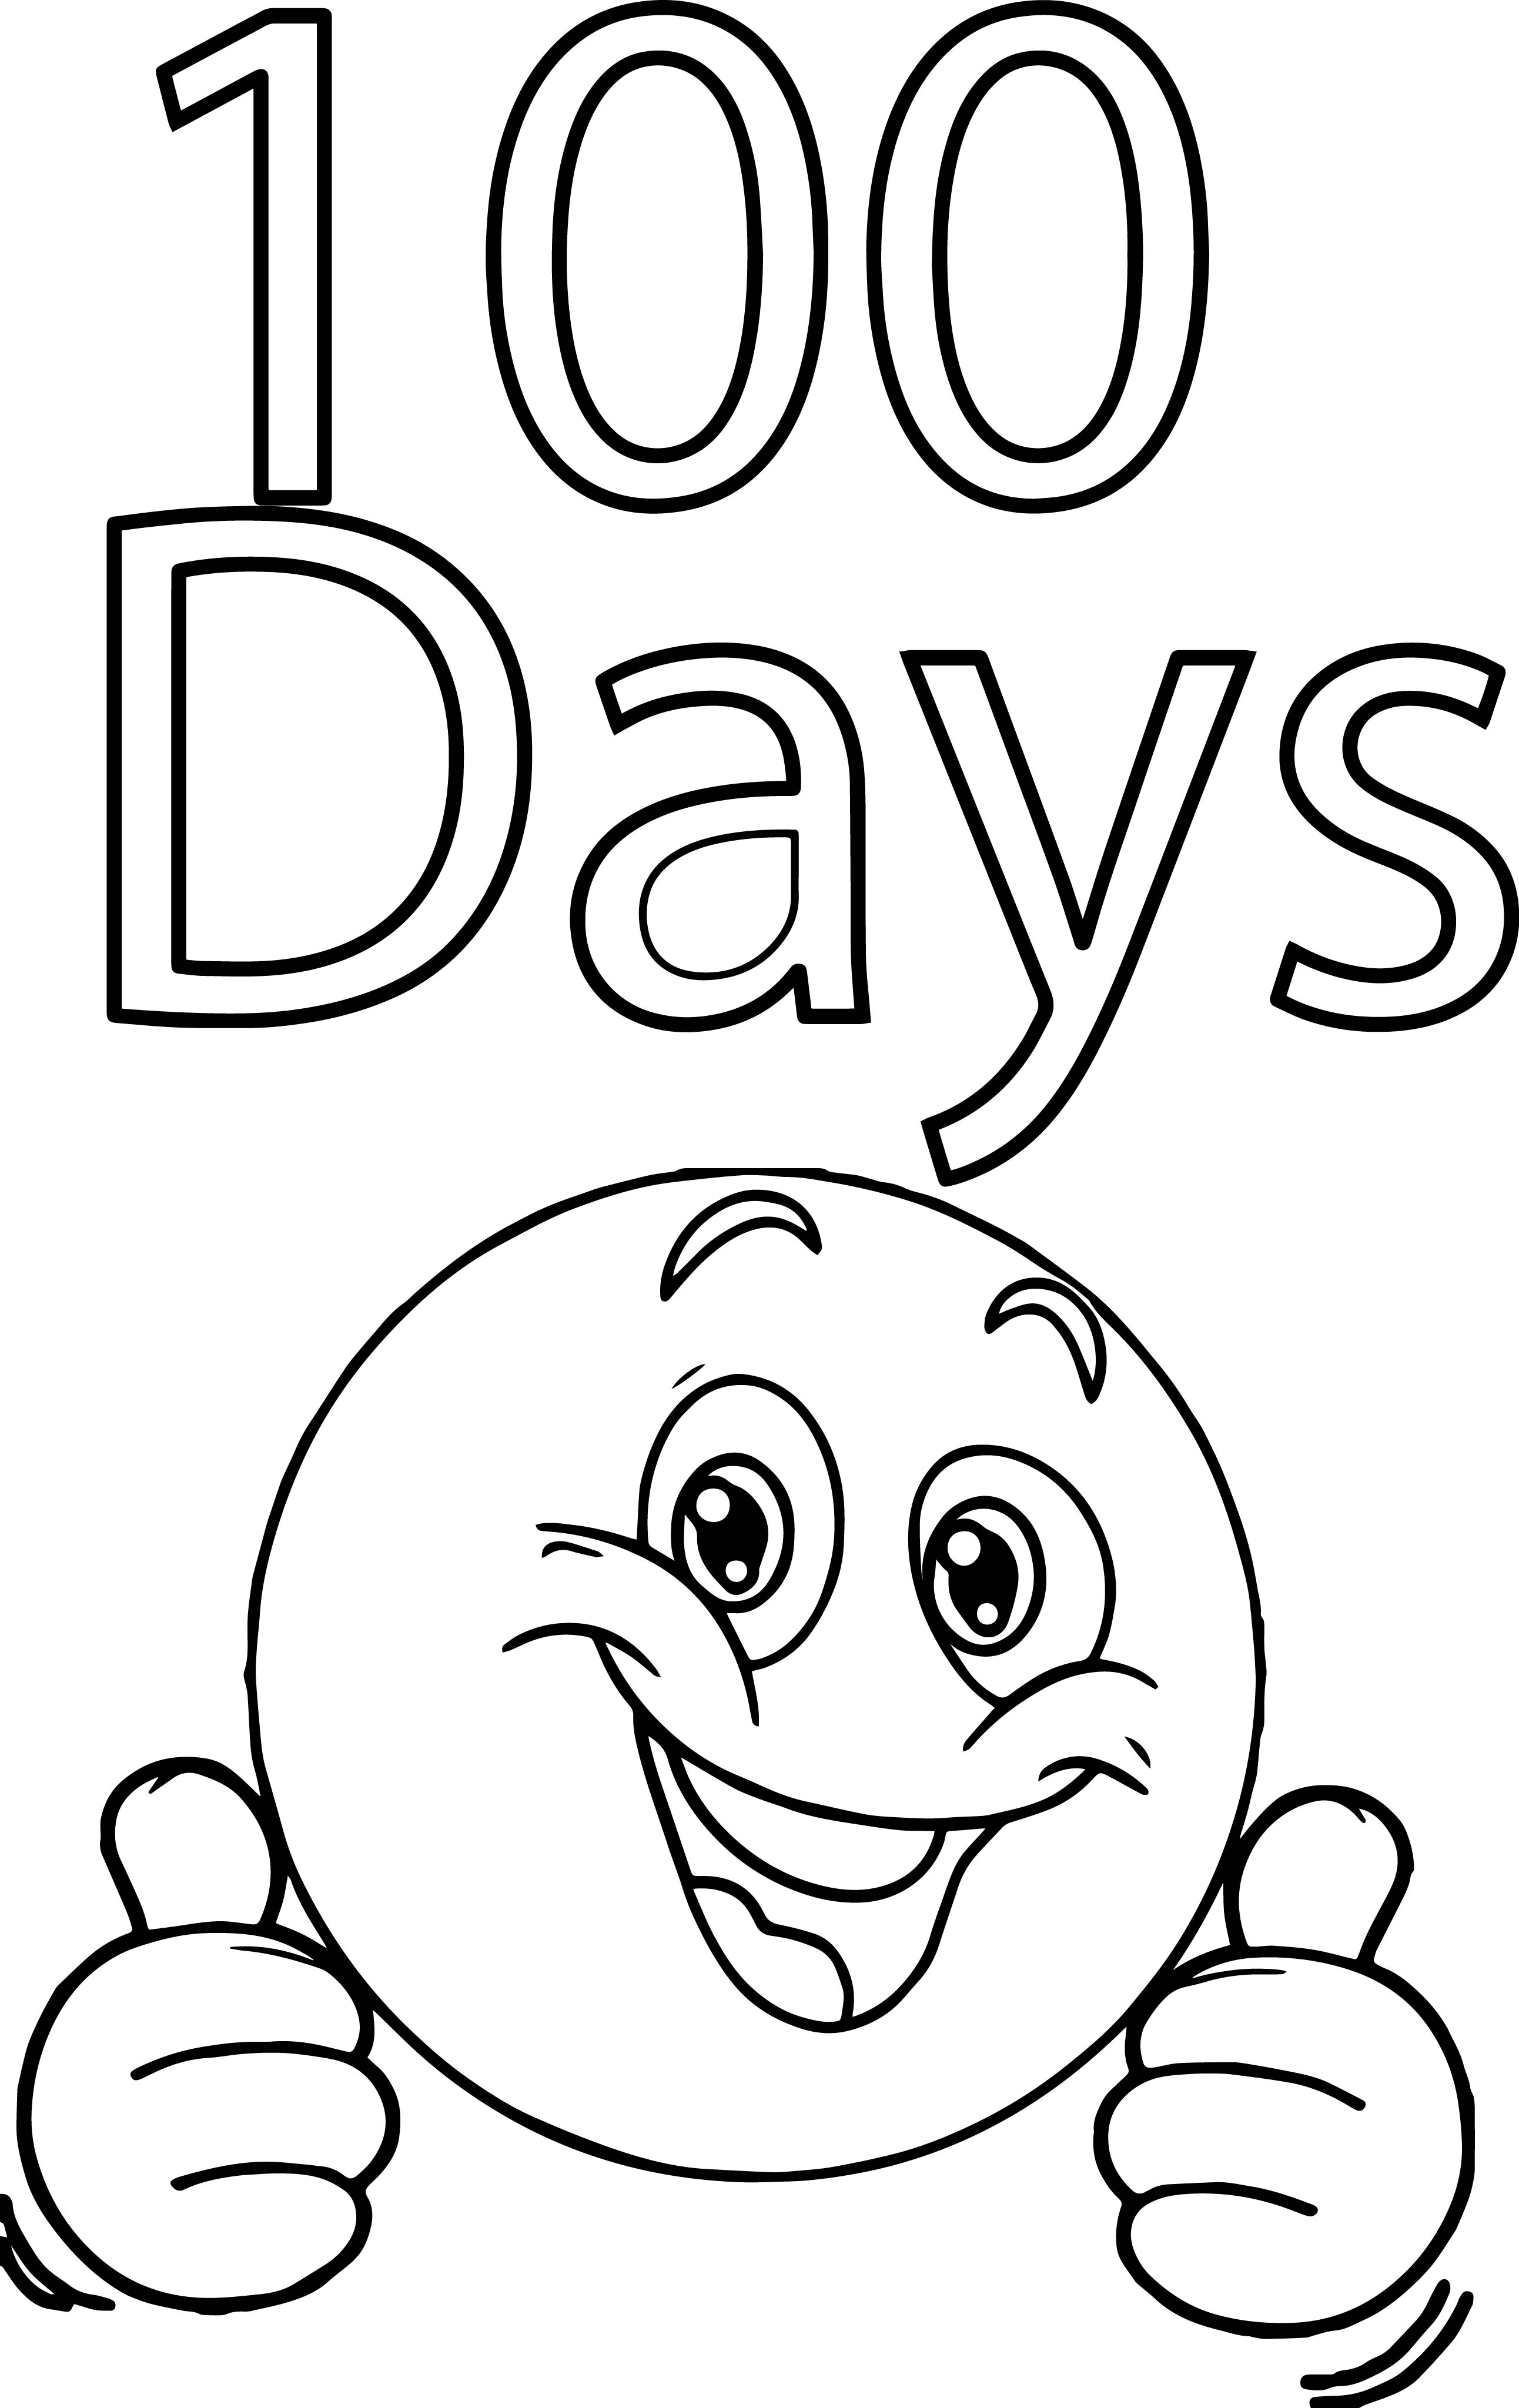 Smiley face 100 days coloring page for 100 coloring pages